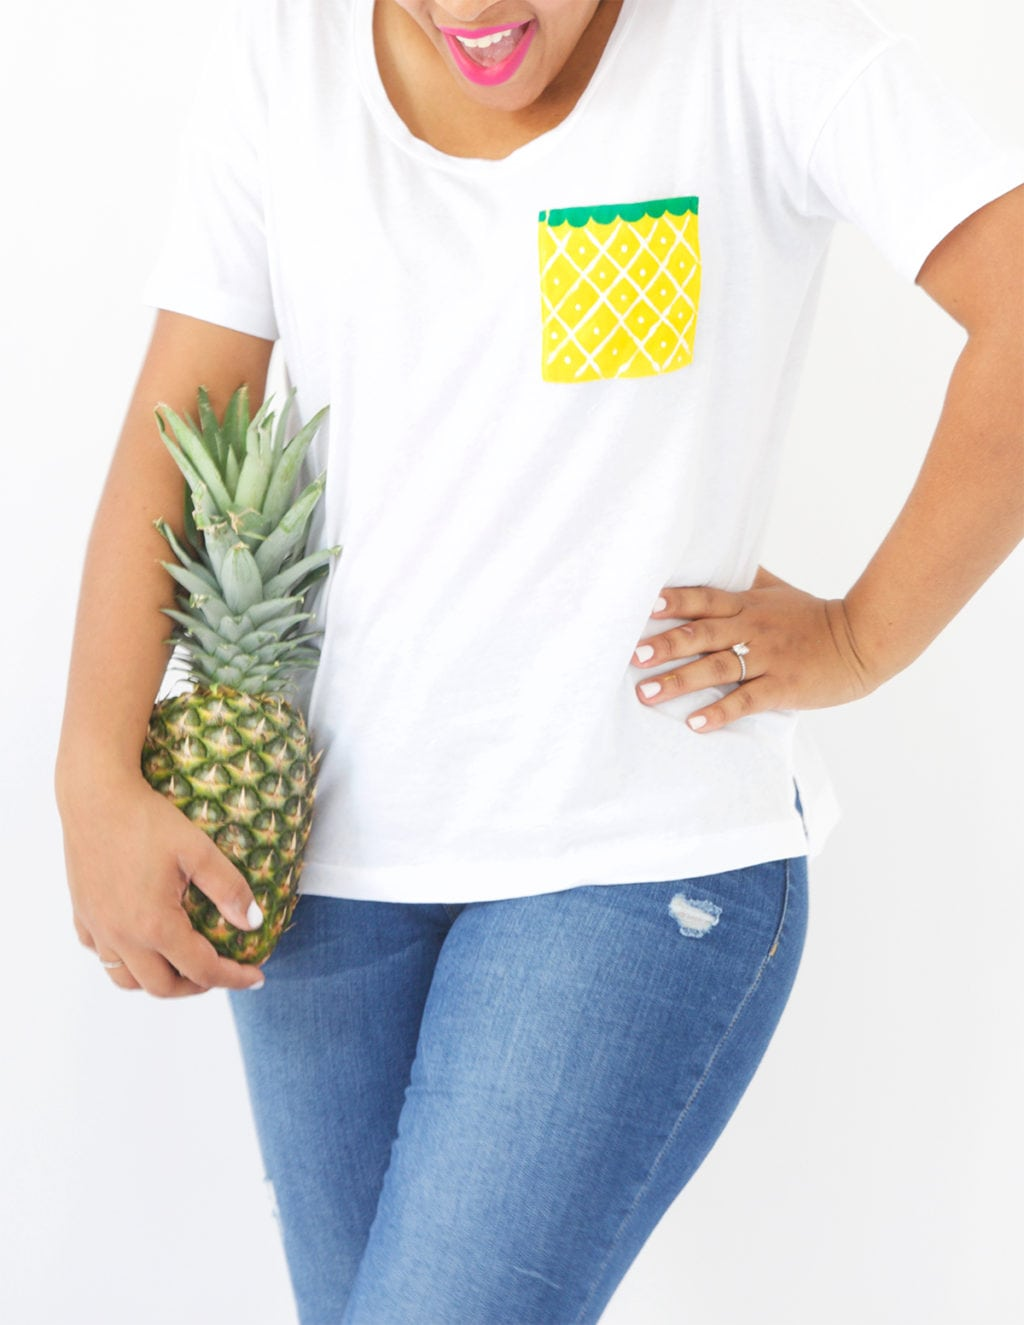 Use an Old Navy Tee to create perfect summertime DIY fruit pocket tees.